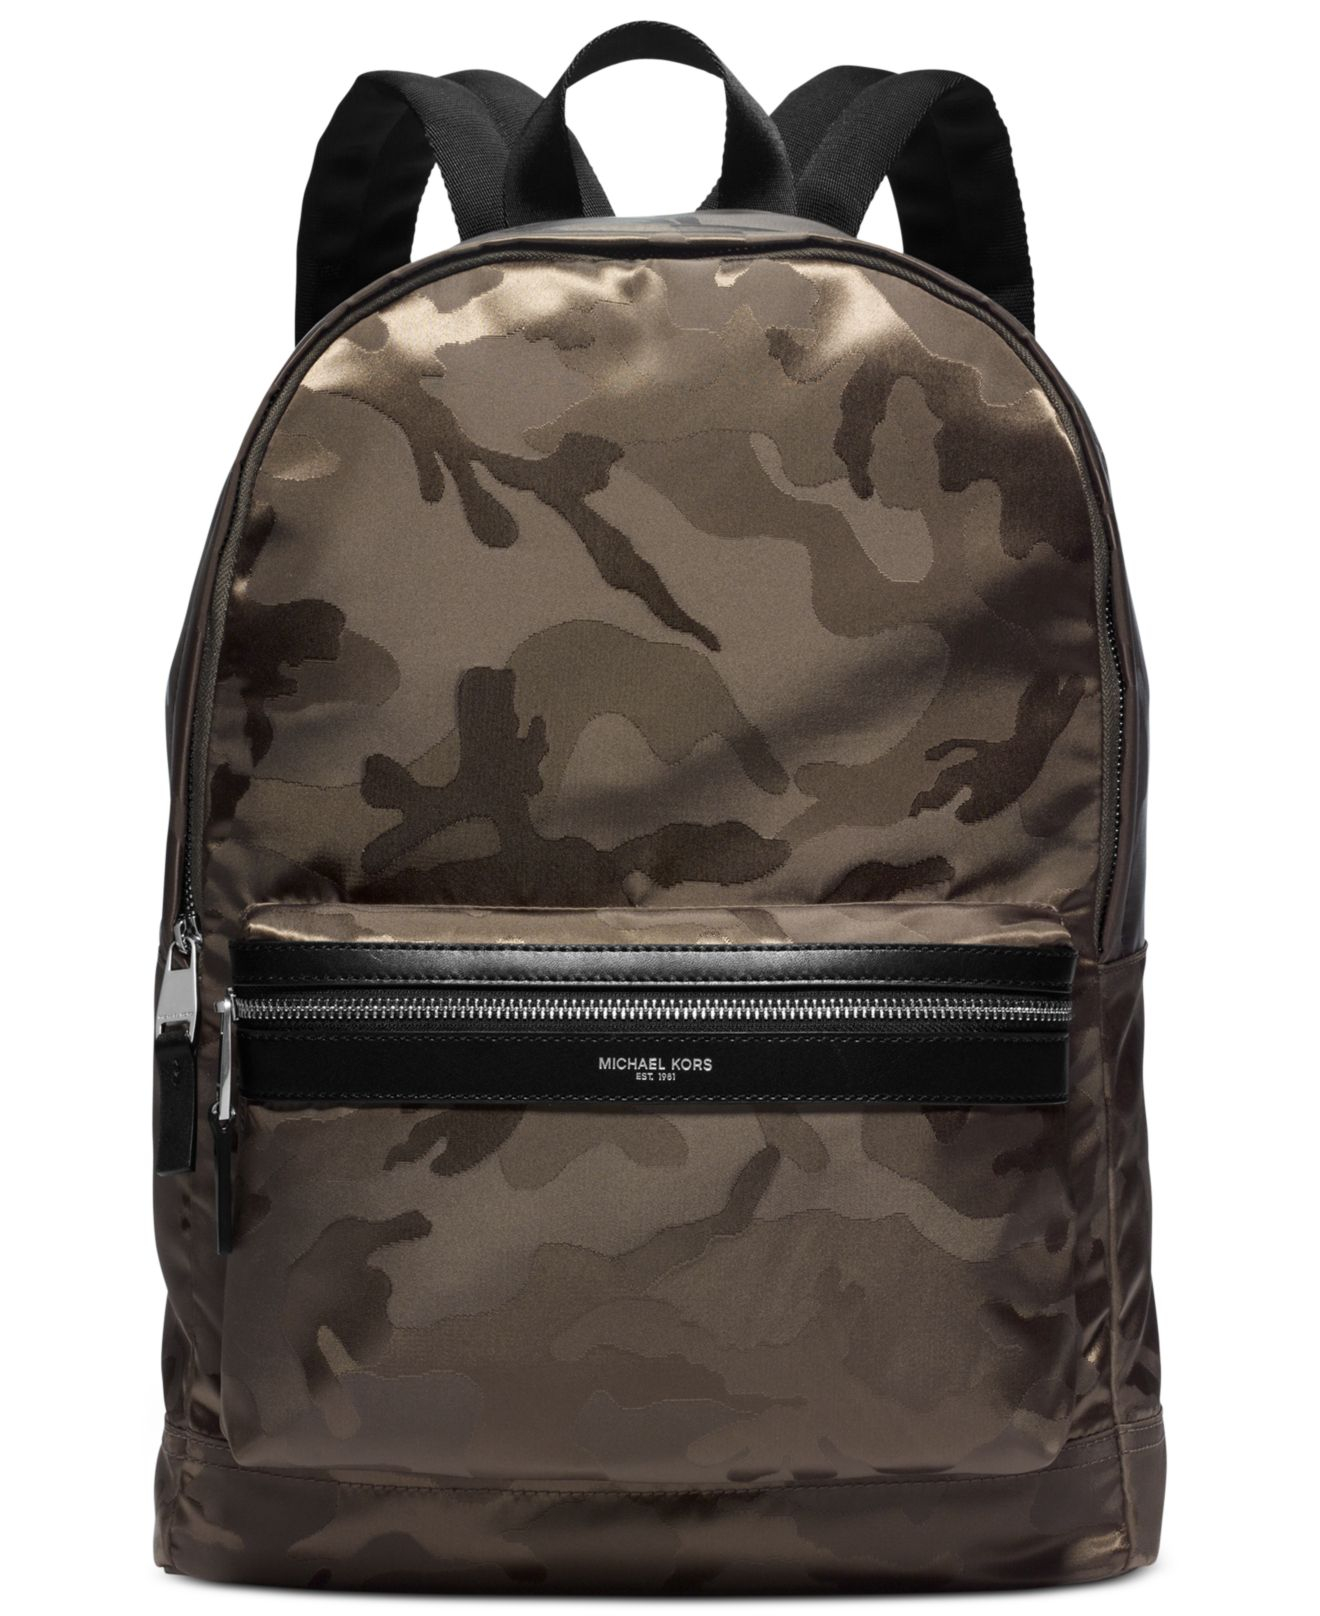 1312126997f3 Michael Kors Kent Camo Backpack in Green for Men - Lyst